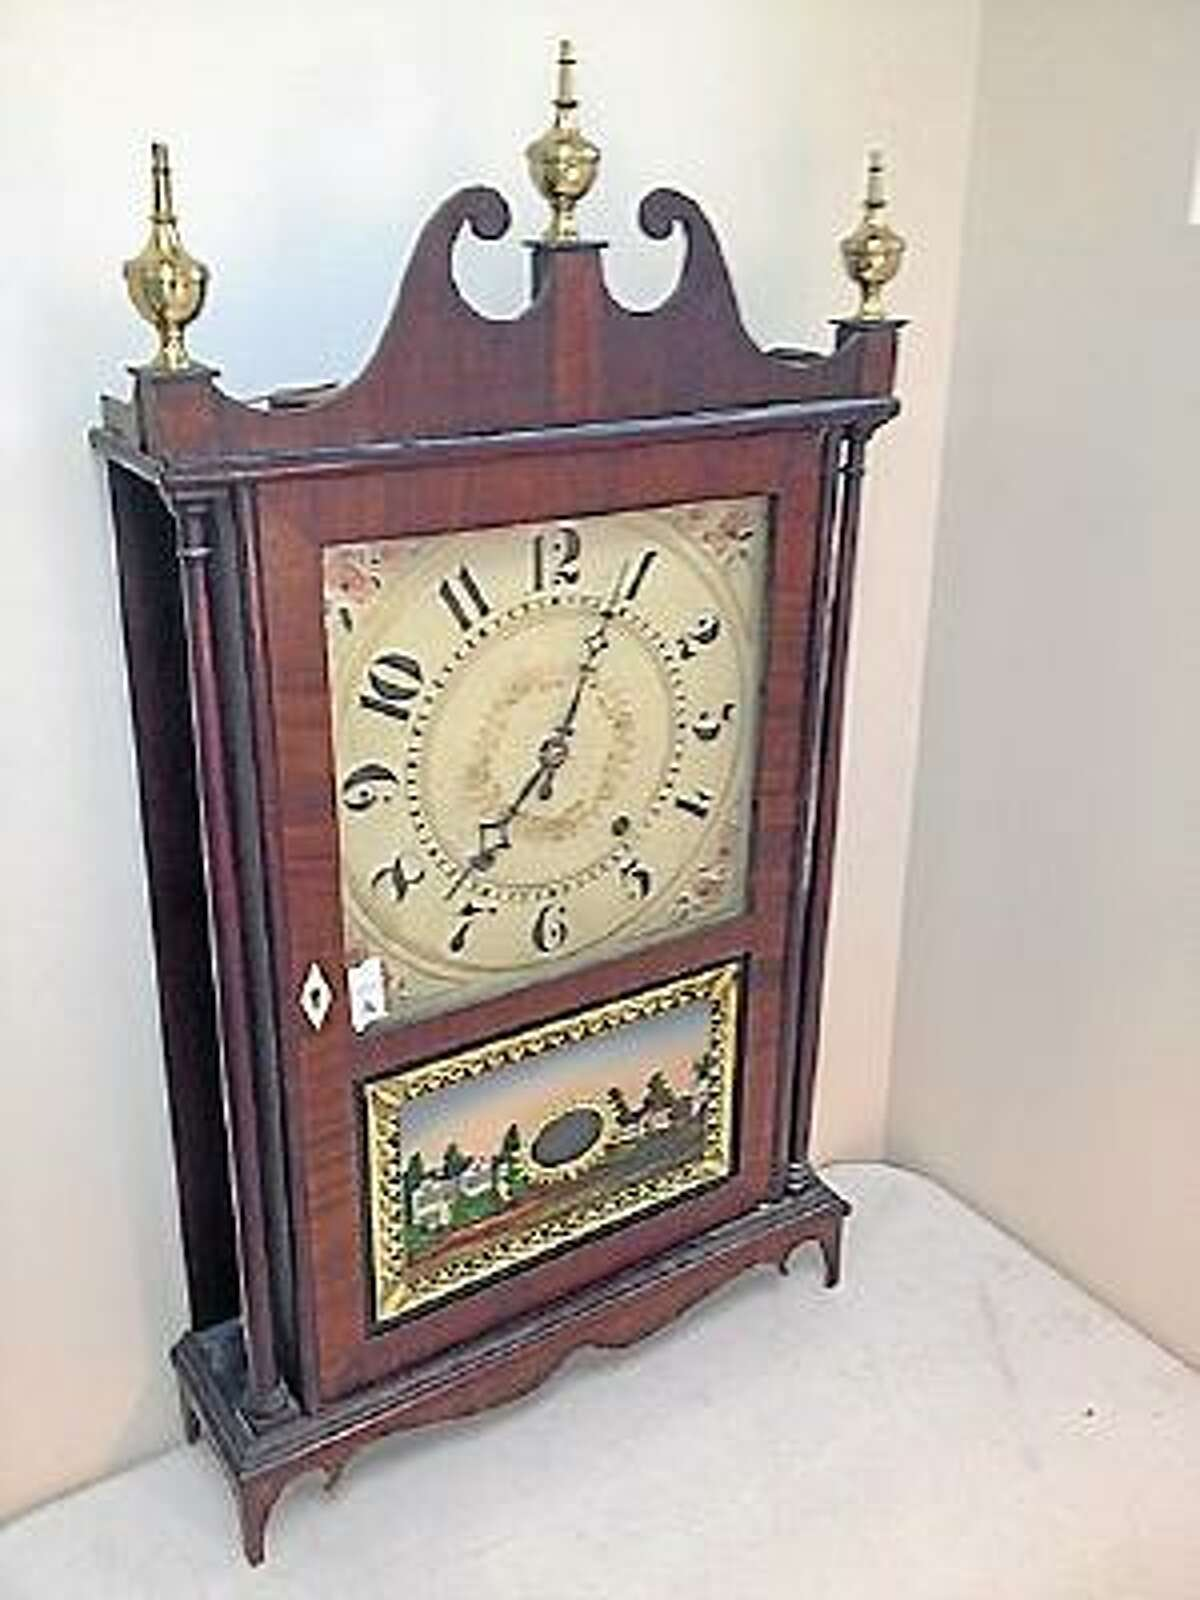 Photo courtesy of Tim's Inc. Antiques such as this clock will be featured at this weekend's auction to benefit the Harwinton Congregational Church.